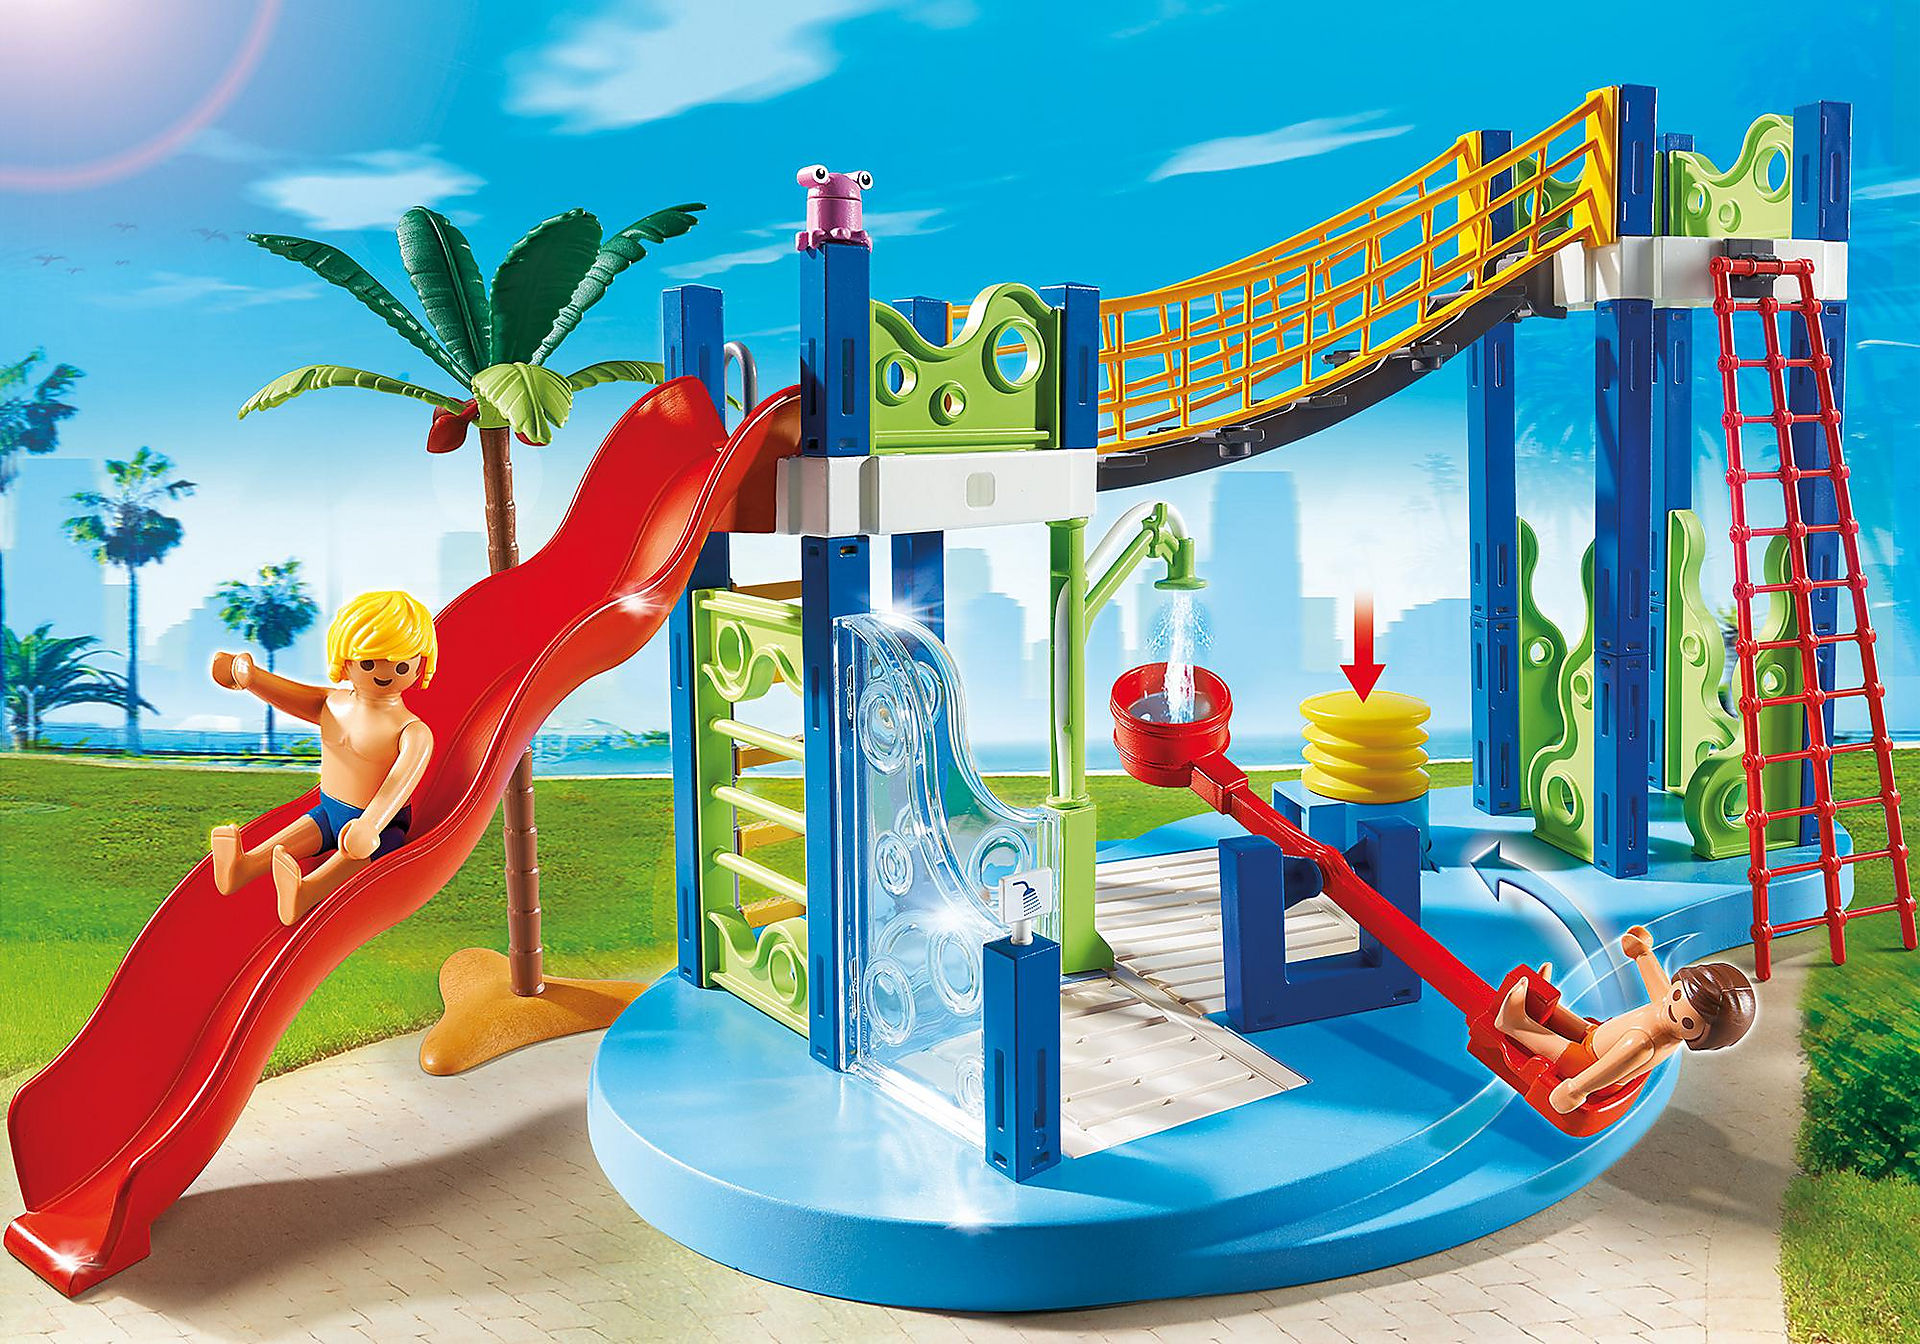 http://media.playmobil.com/i/playmobil/6670_product_detail/Water Park Play Area